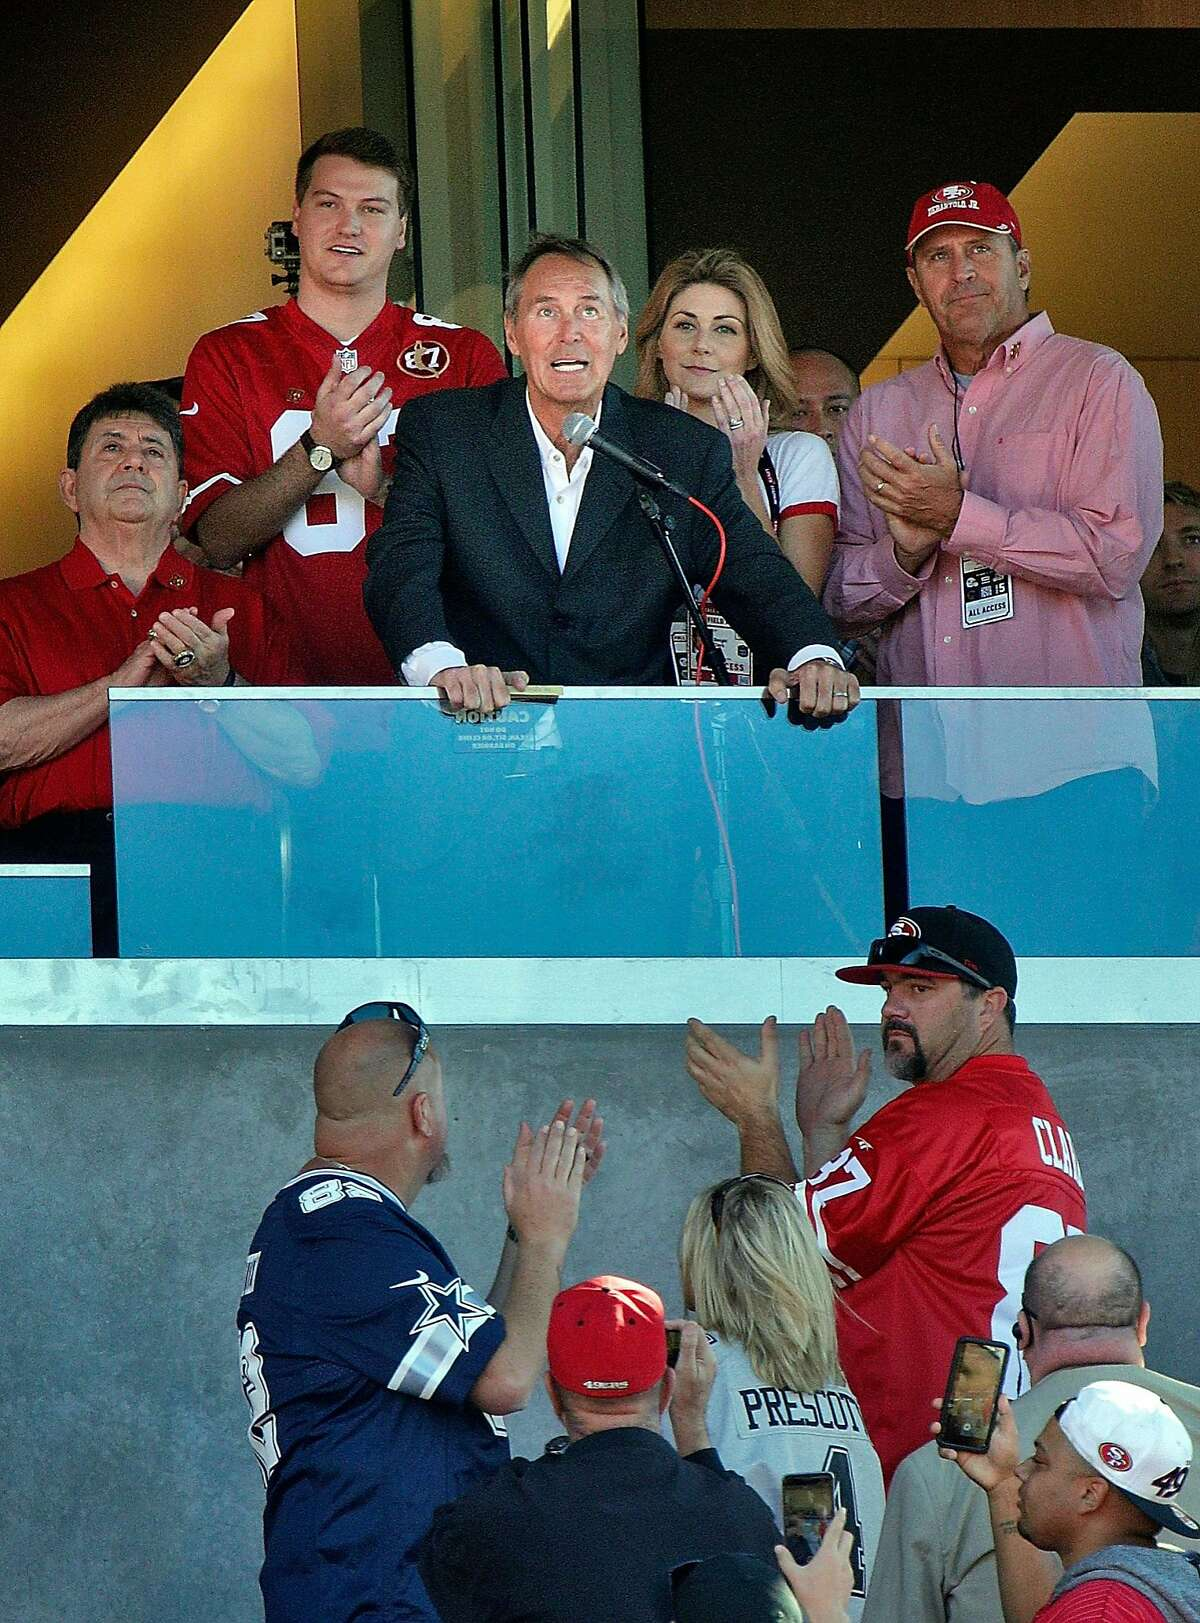 Dwight Clark, flanked by family and Eddieo DeBartolo, speaks to the crowd during a halftime ceremony honoring Clark who recently announced he is battling ALS, as the San Francisco 49ers payed the Dallas Cowboys at Levi's Stadium in Santa Clara on Sunday, Oct. 22, 2017.